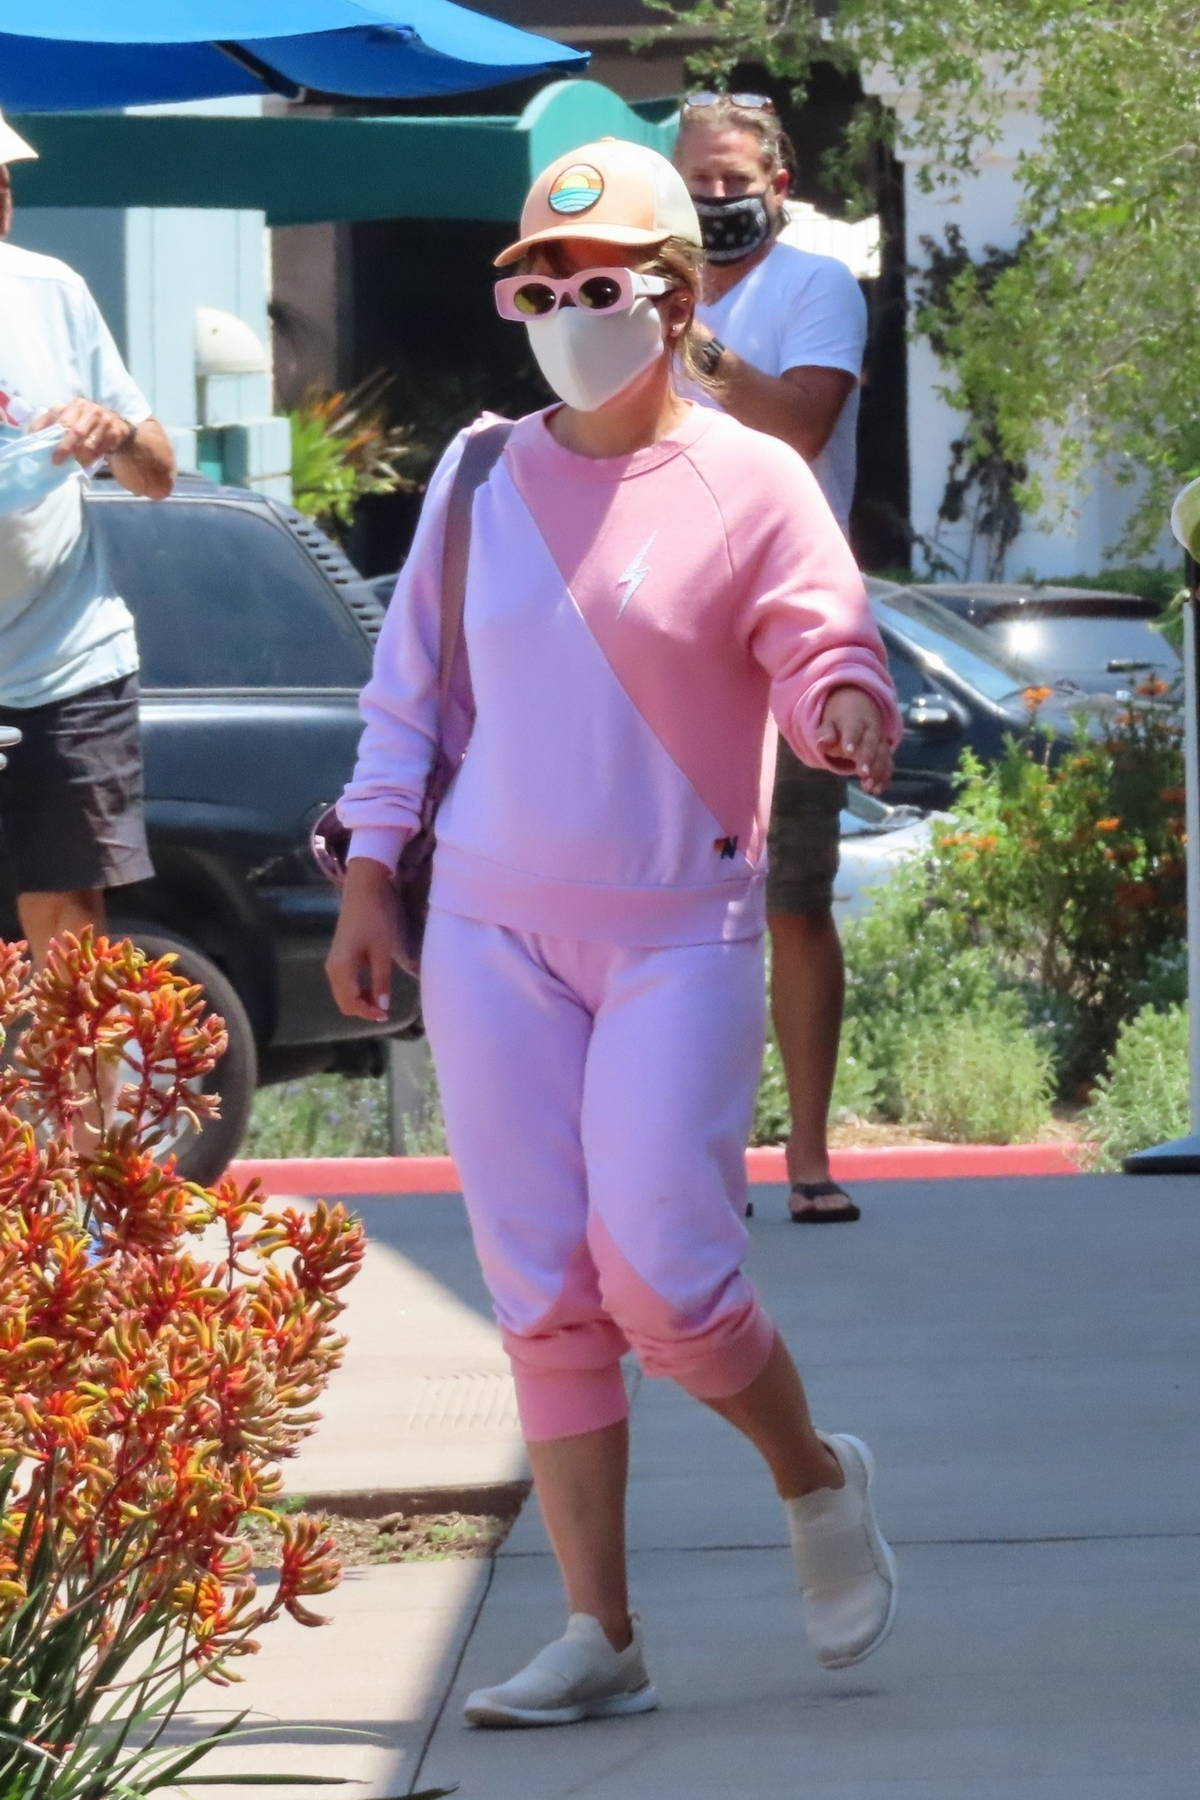 Lady Gaga goes incognito in a pink sweatsuit while out to grab lunch with her assistant in Malibu, California